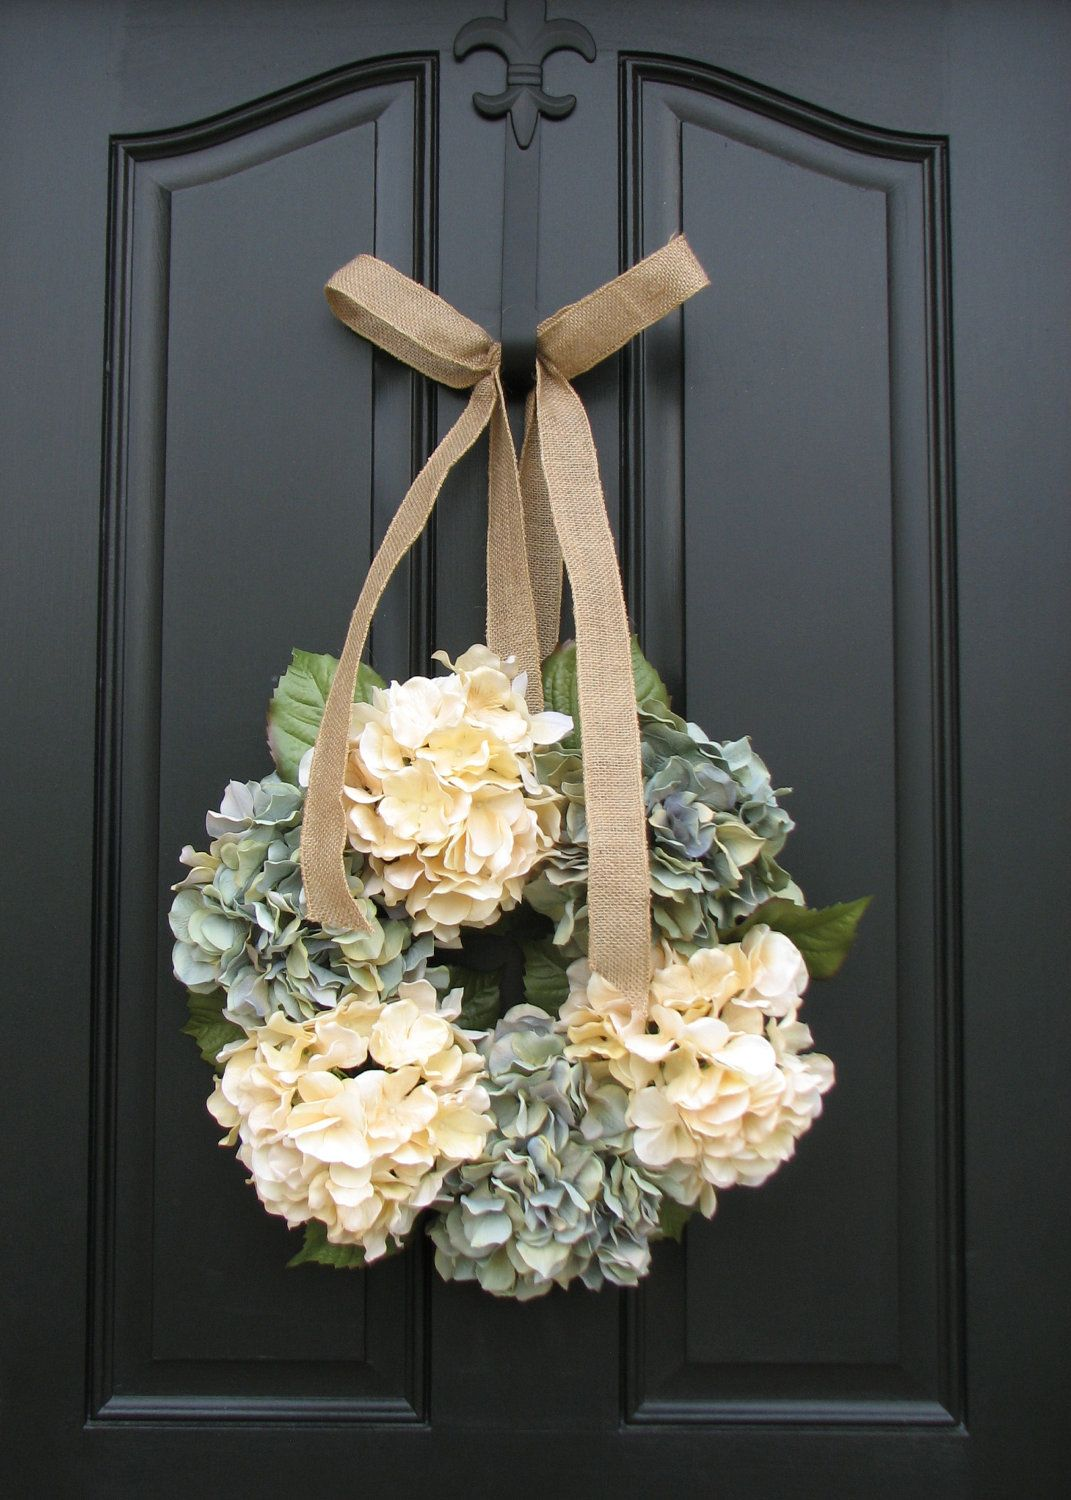 Summer Decor Housewarming Gift Bedroom Decorations Door Wreath 70 00 Via Etsy